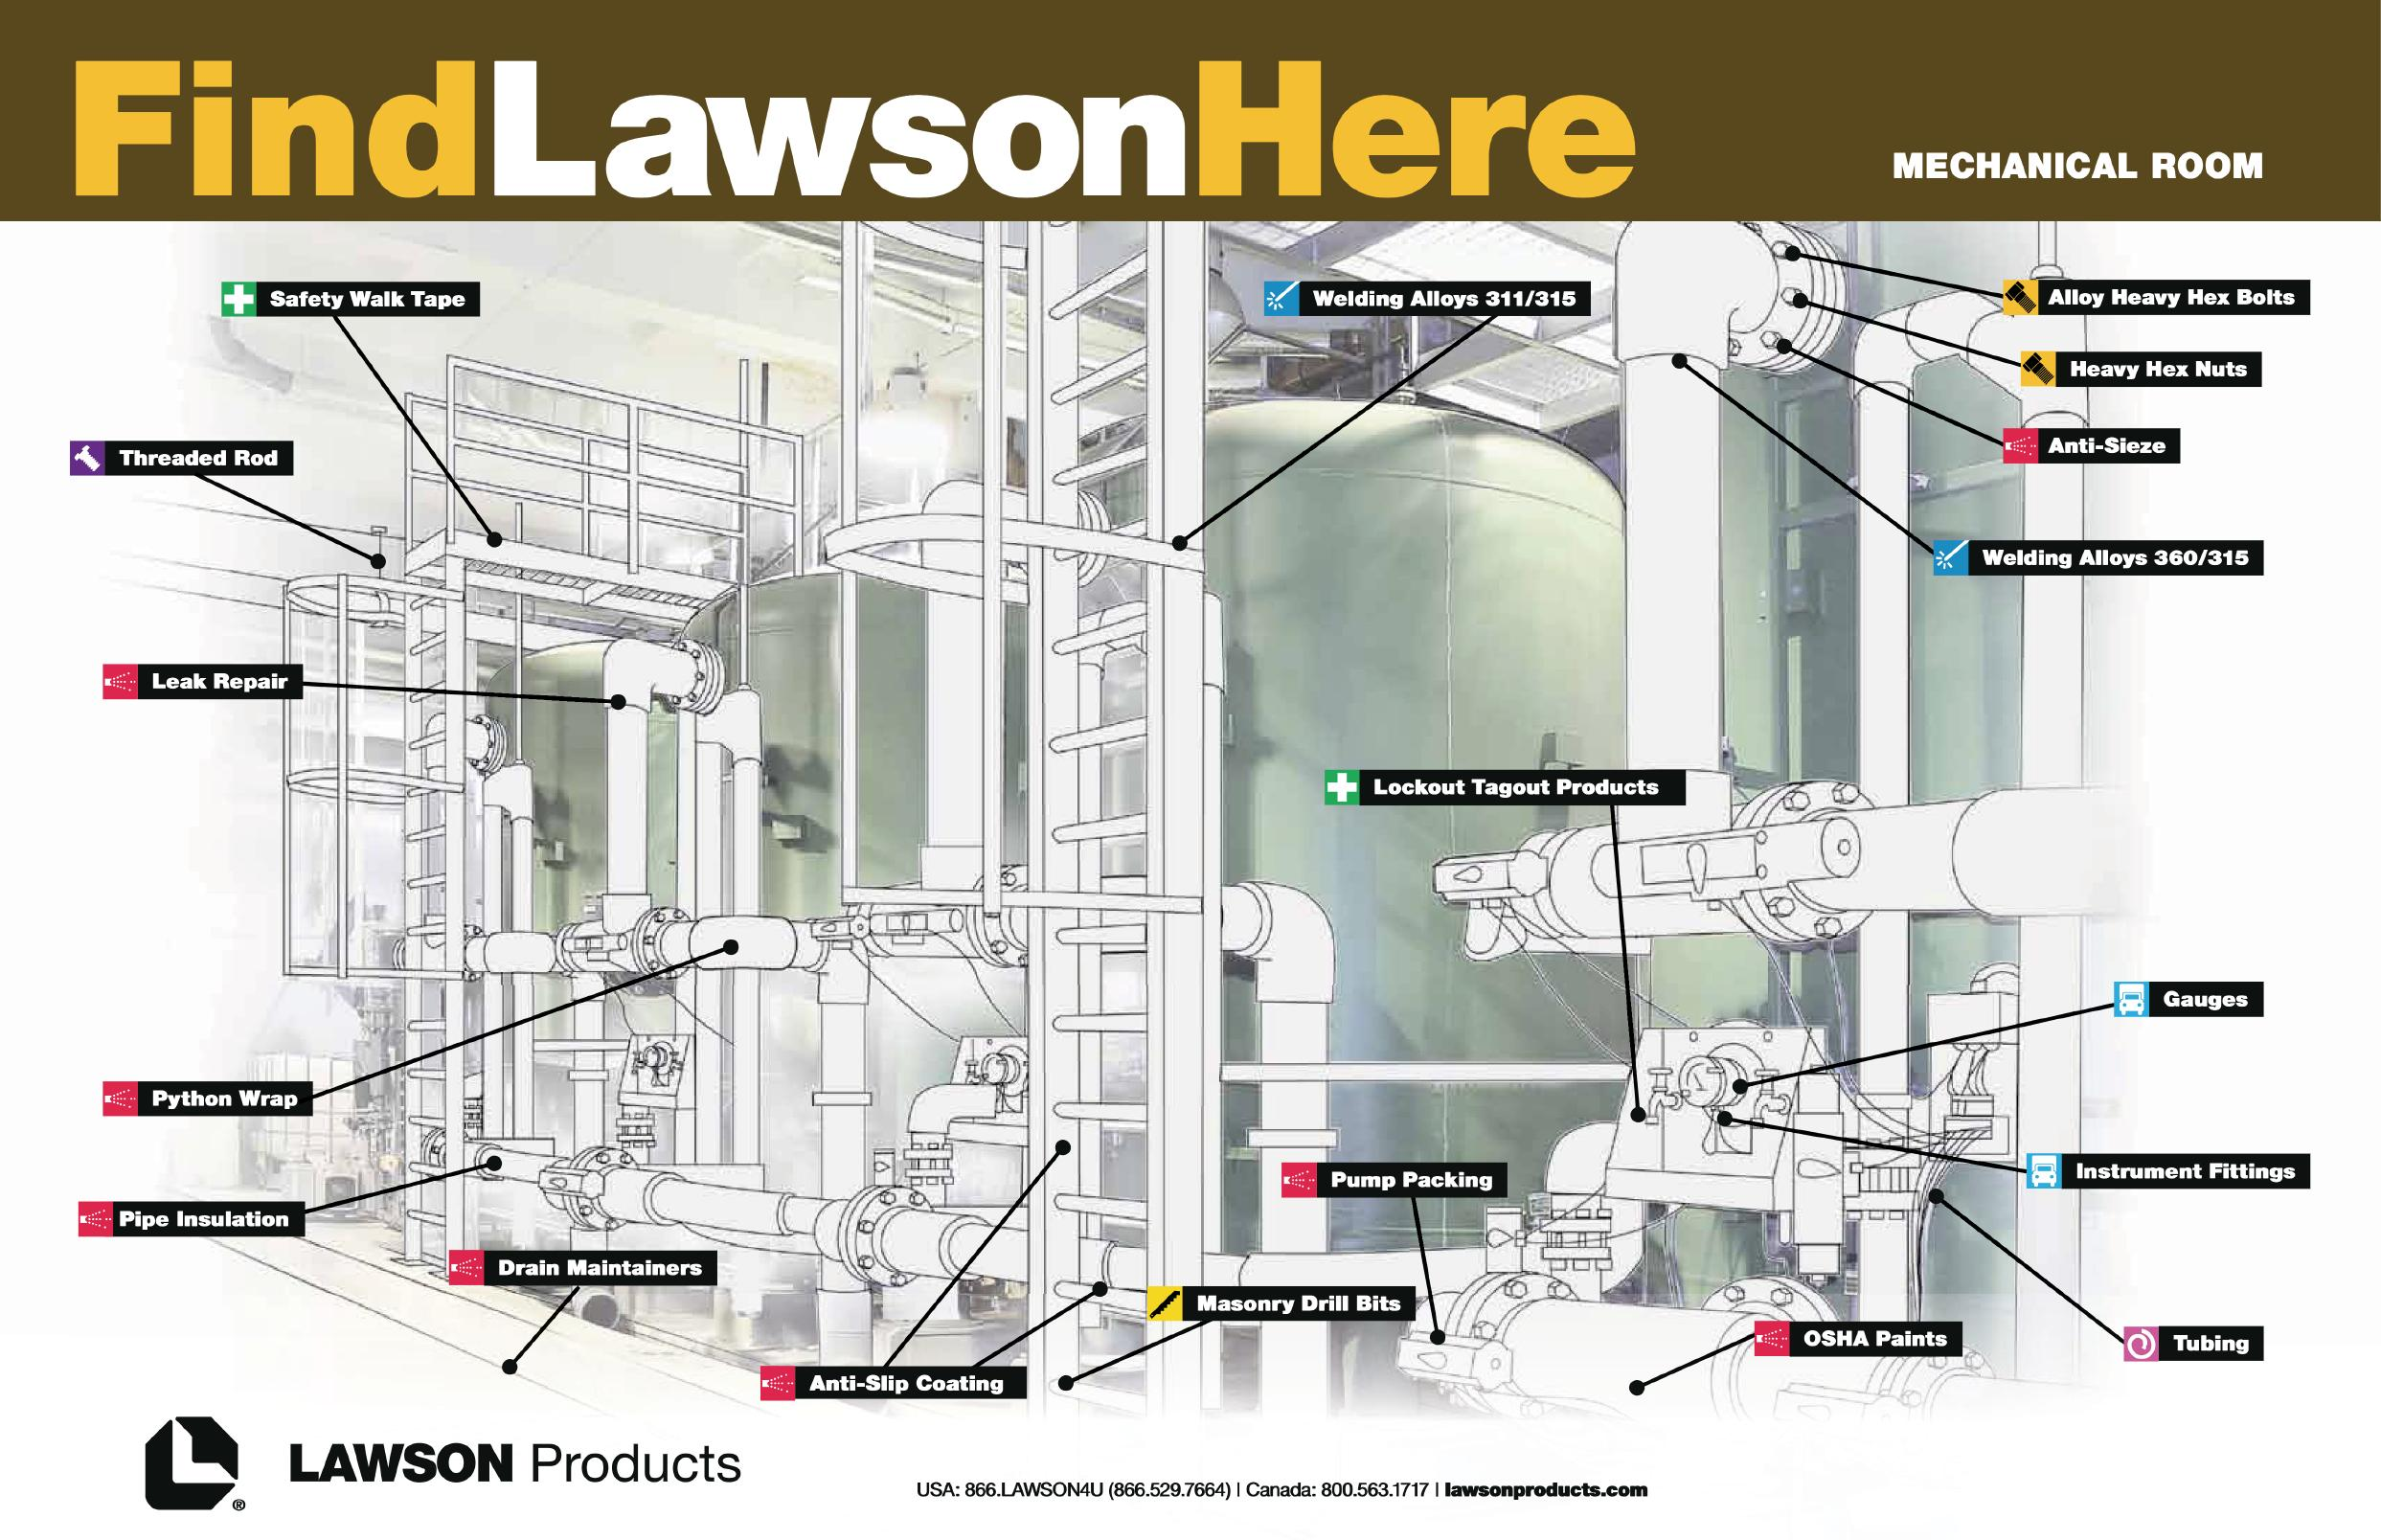 Maintenance Shop Chemical Products - Find Lawson Here Page 10